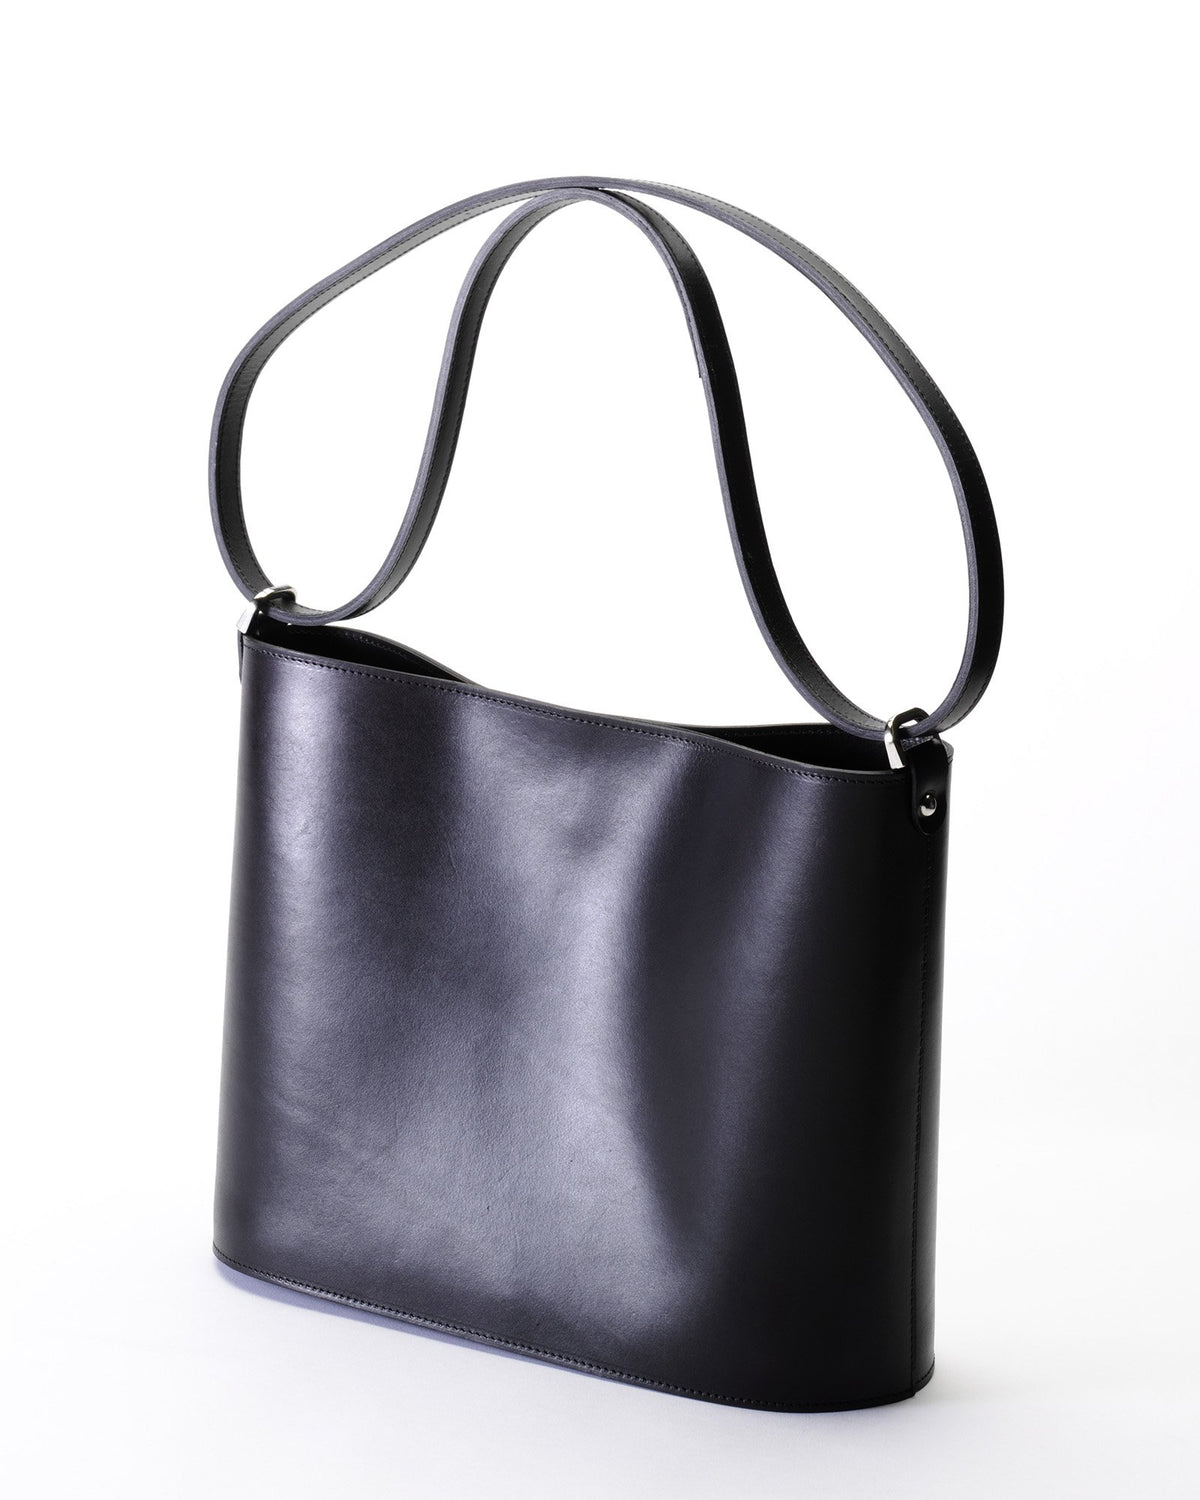 The Darlingmax Medium Tote - Black